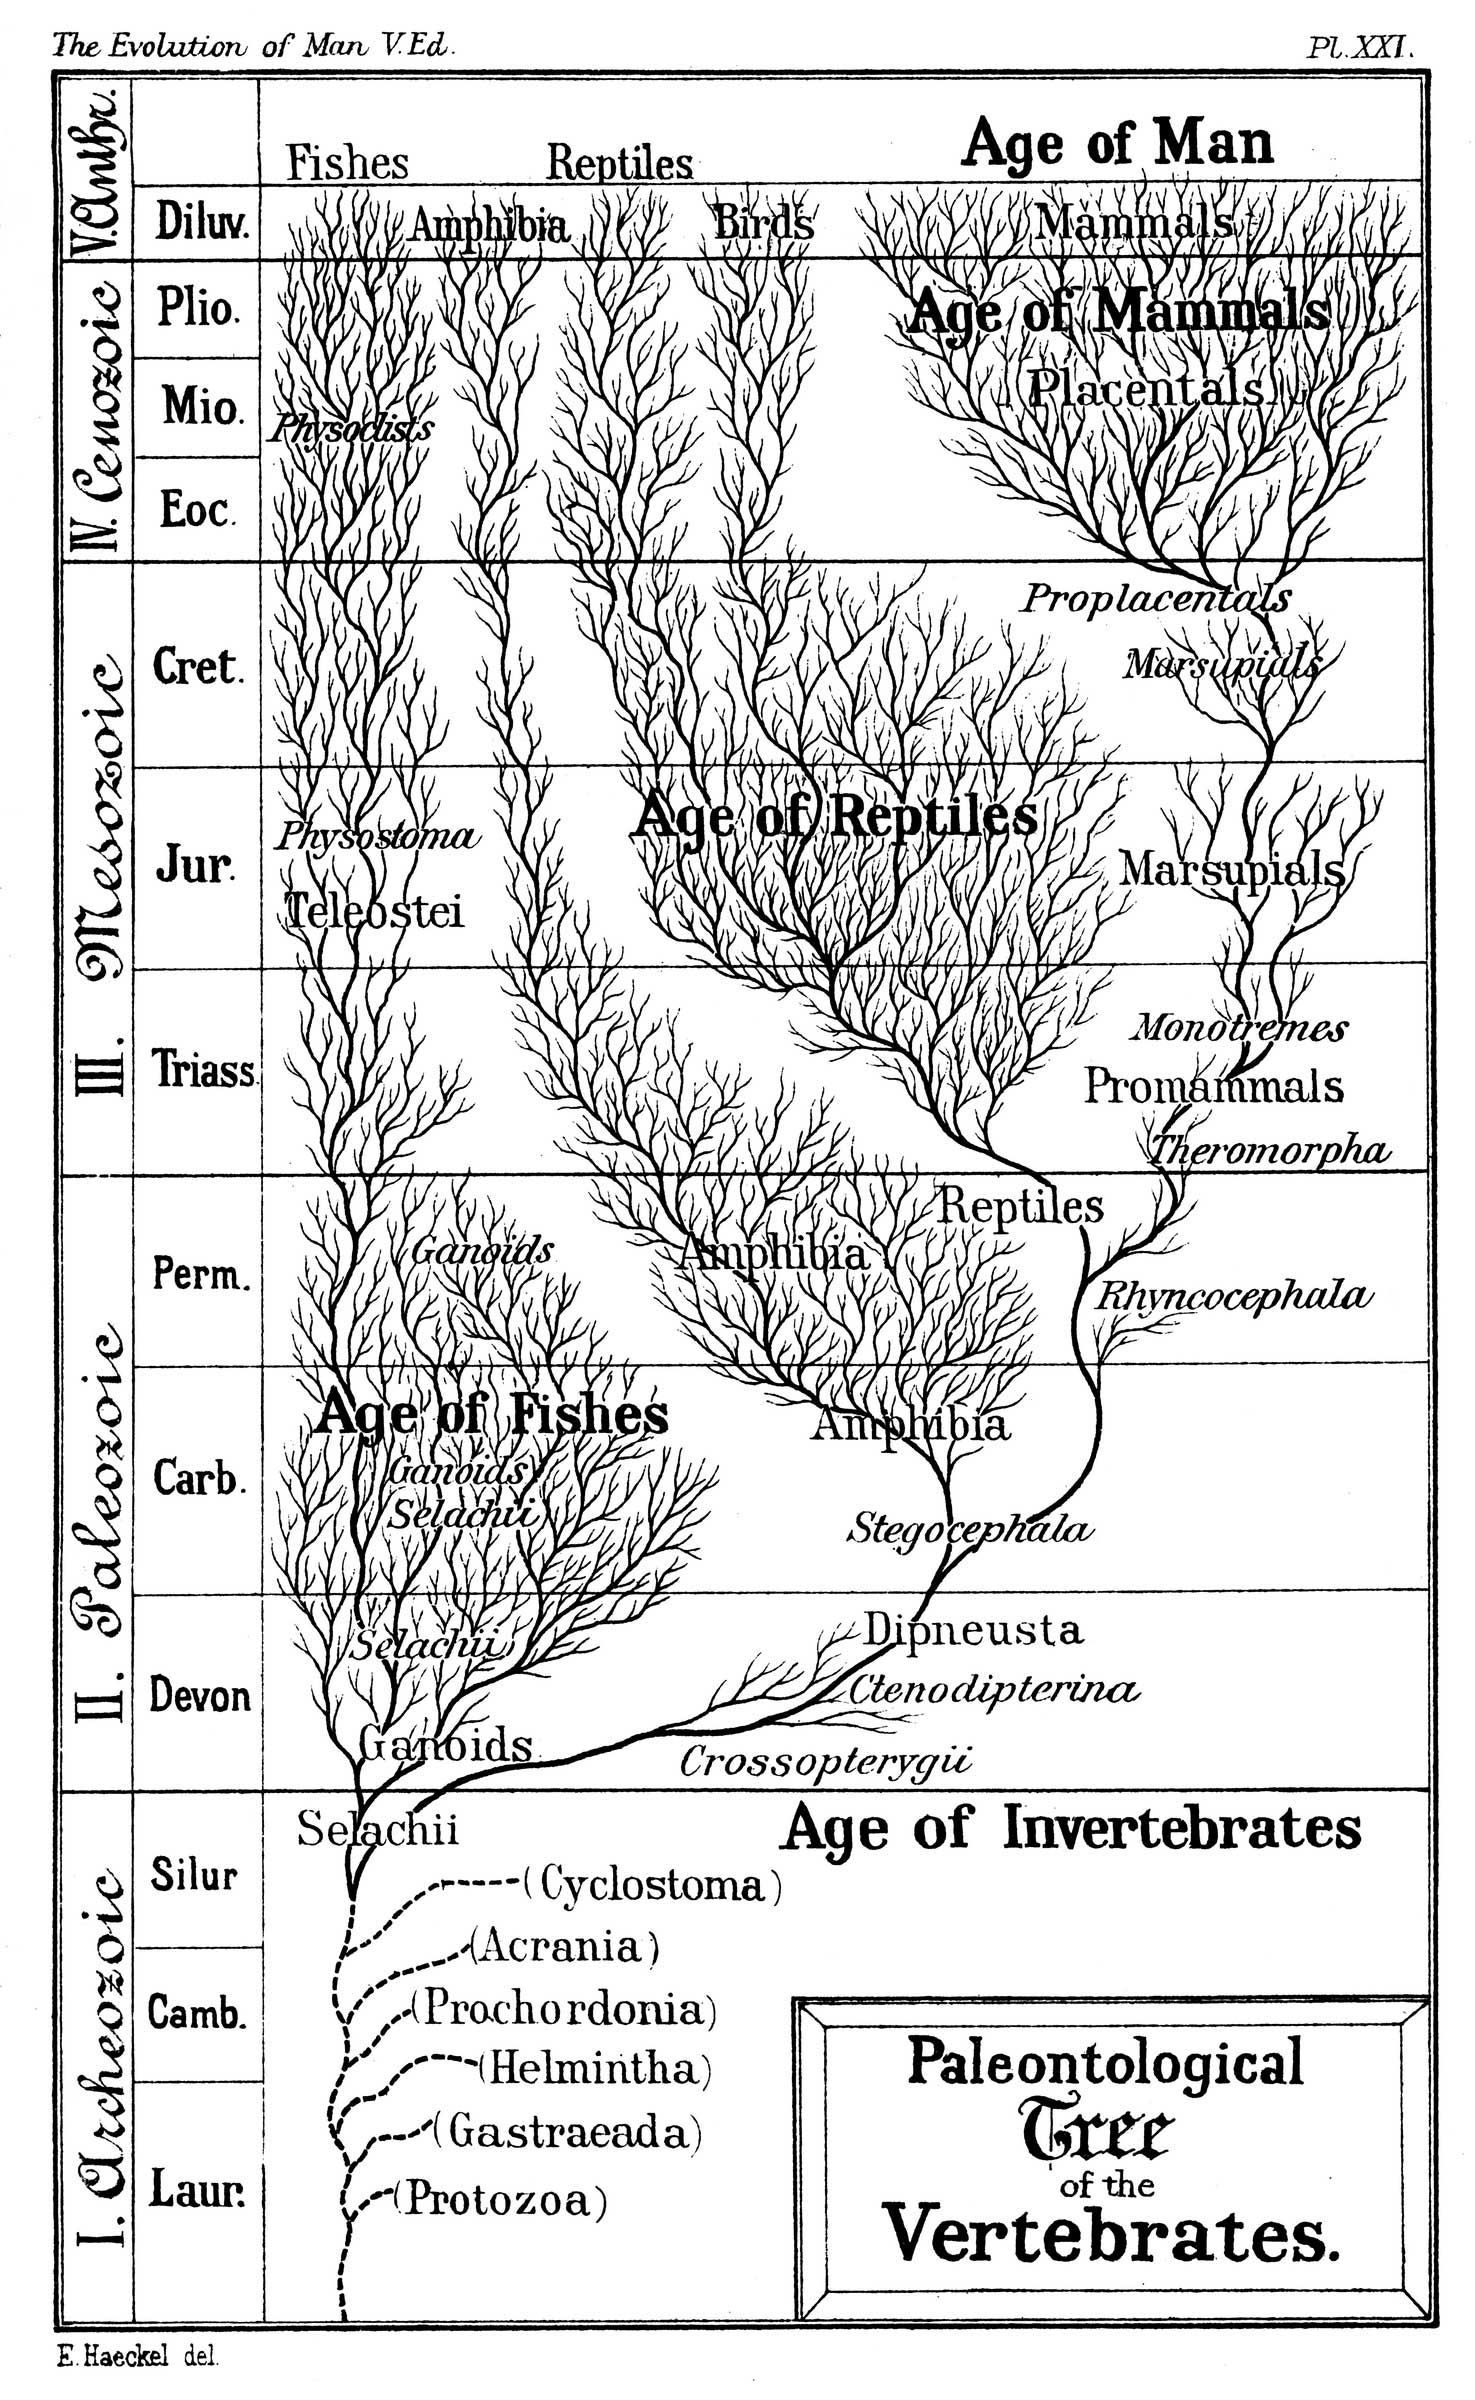 Haeckel S Paleontological Tree Of Vertebrates C